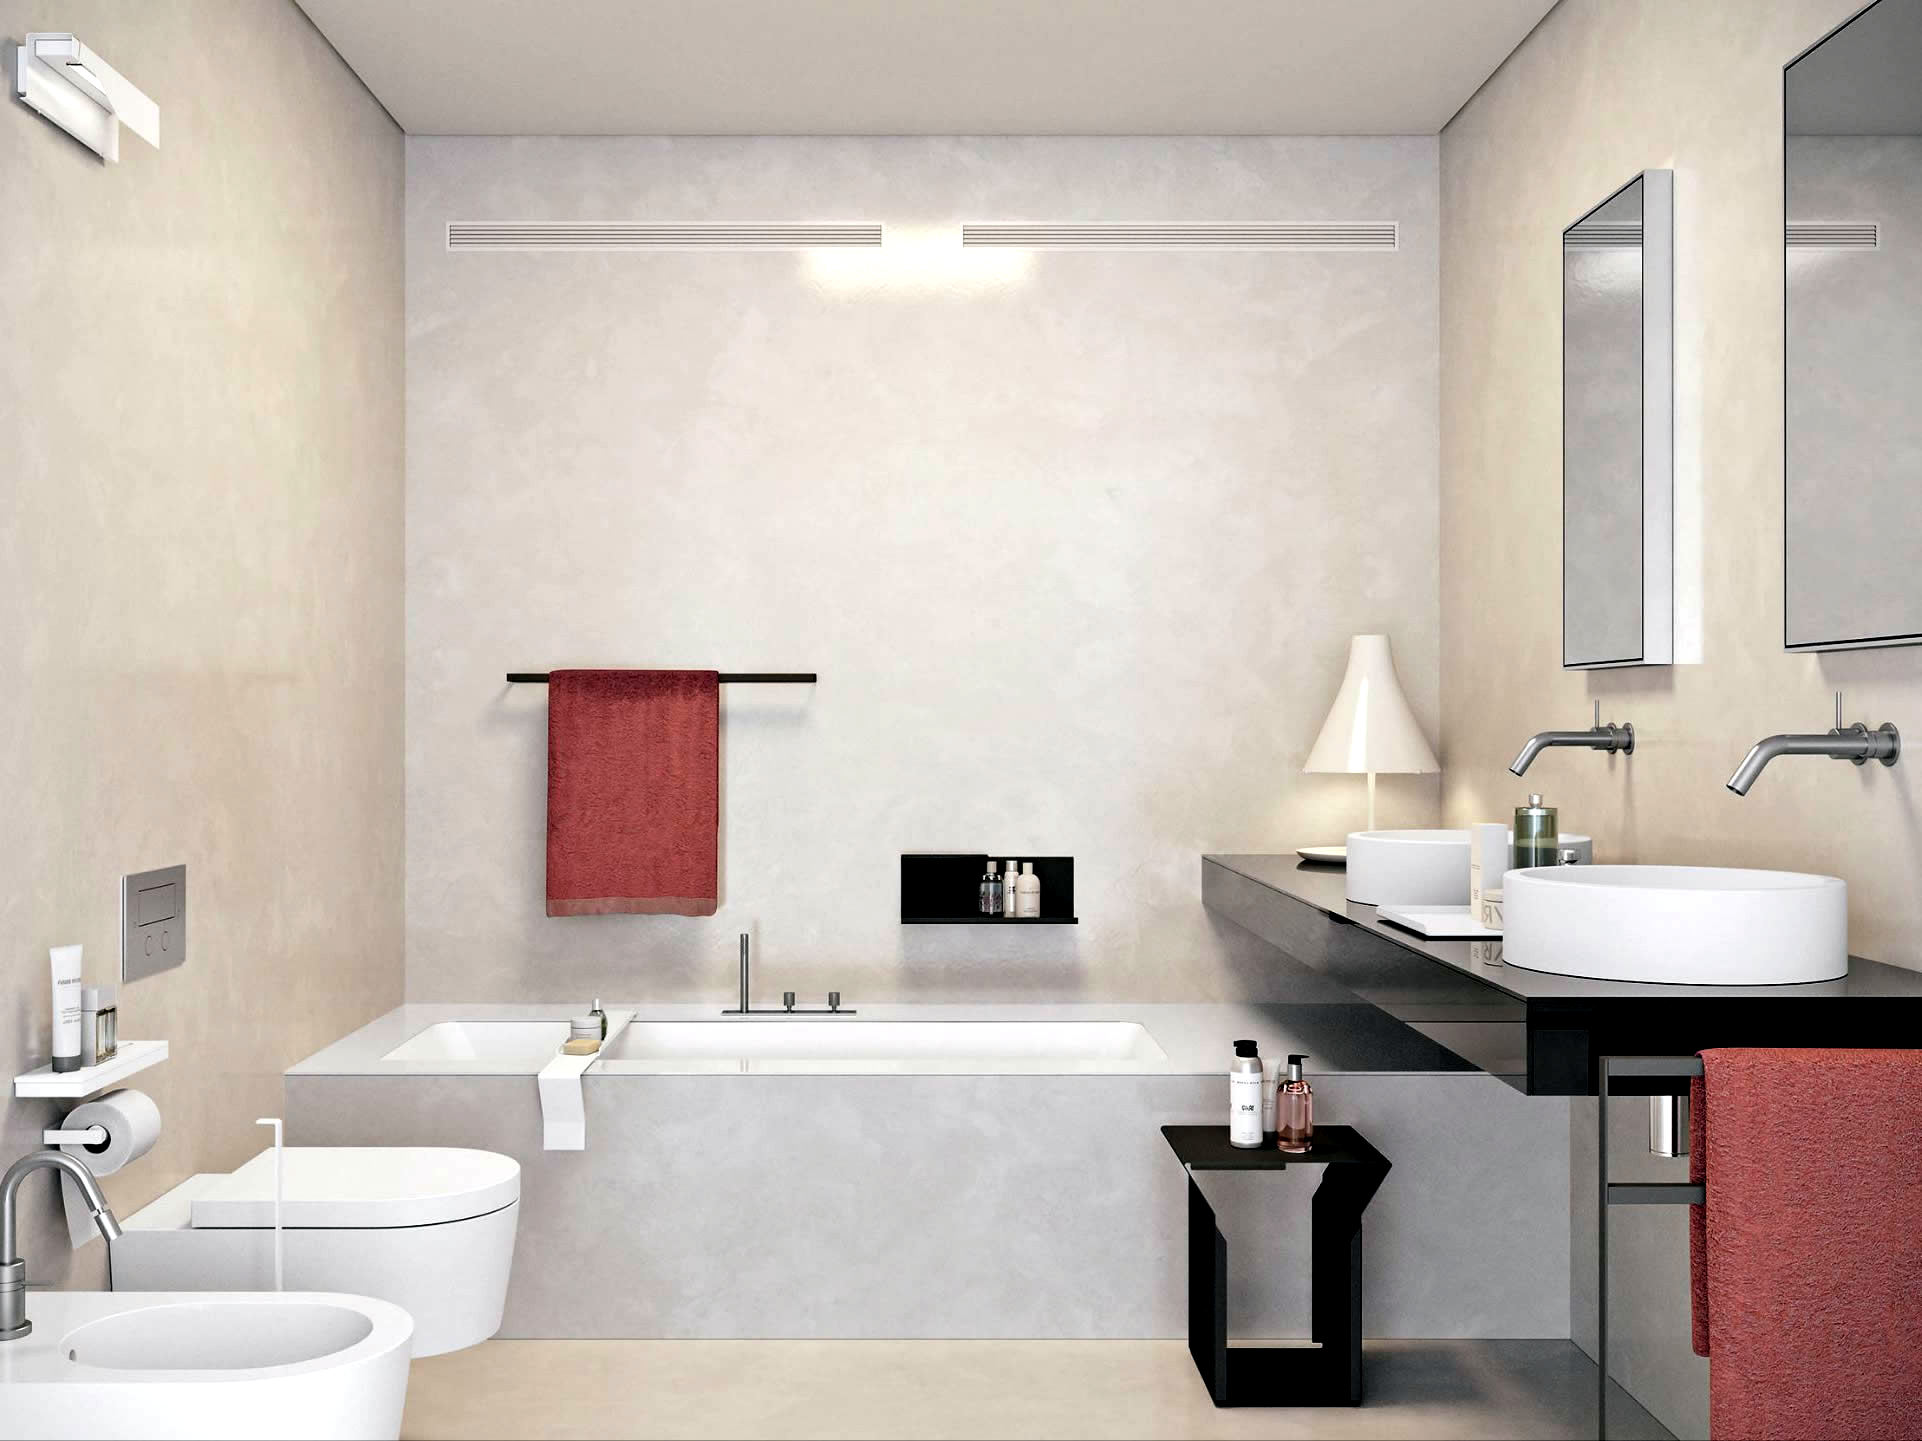 Build In Bathroom Design : Modern built in bath tub with space saving design